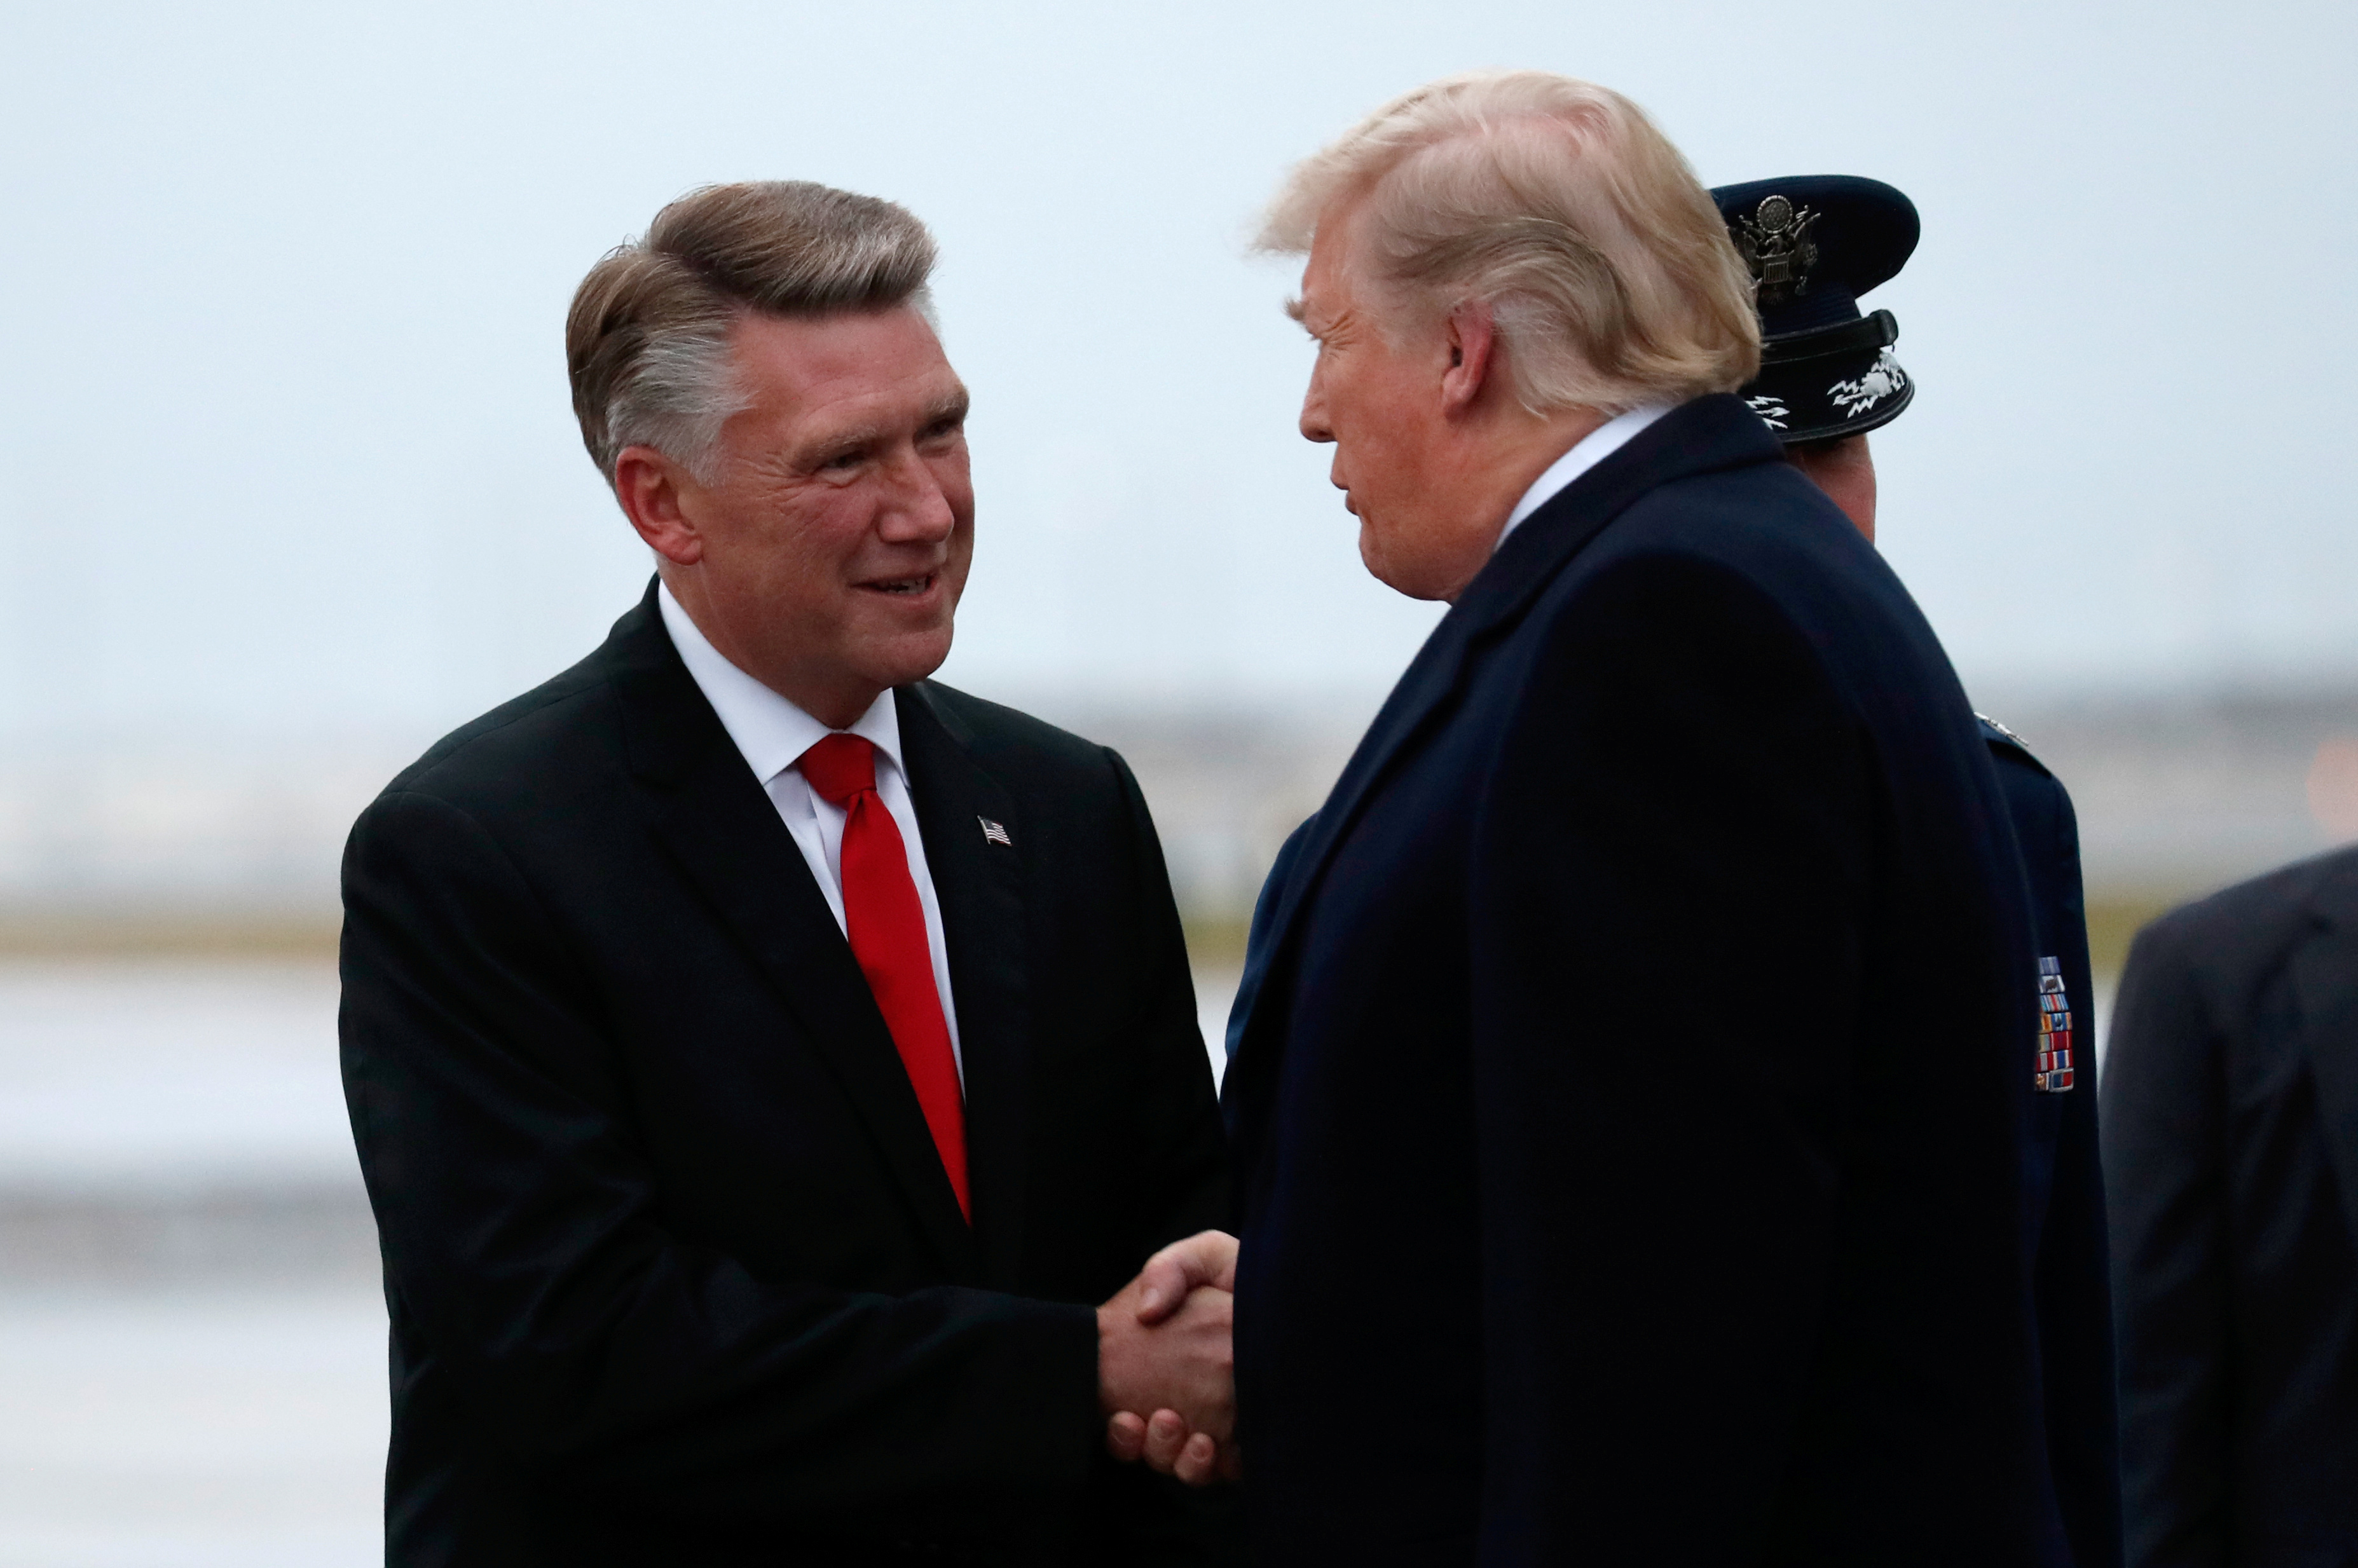 U.S. President Donald Trump greets Mark Harris, Republican candidate from North Carolina's 9th Congressional district, in Charlotte, North Carolina, U.S., October 26, 2018. REUTERS/Kevin Lamarque/File Photo